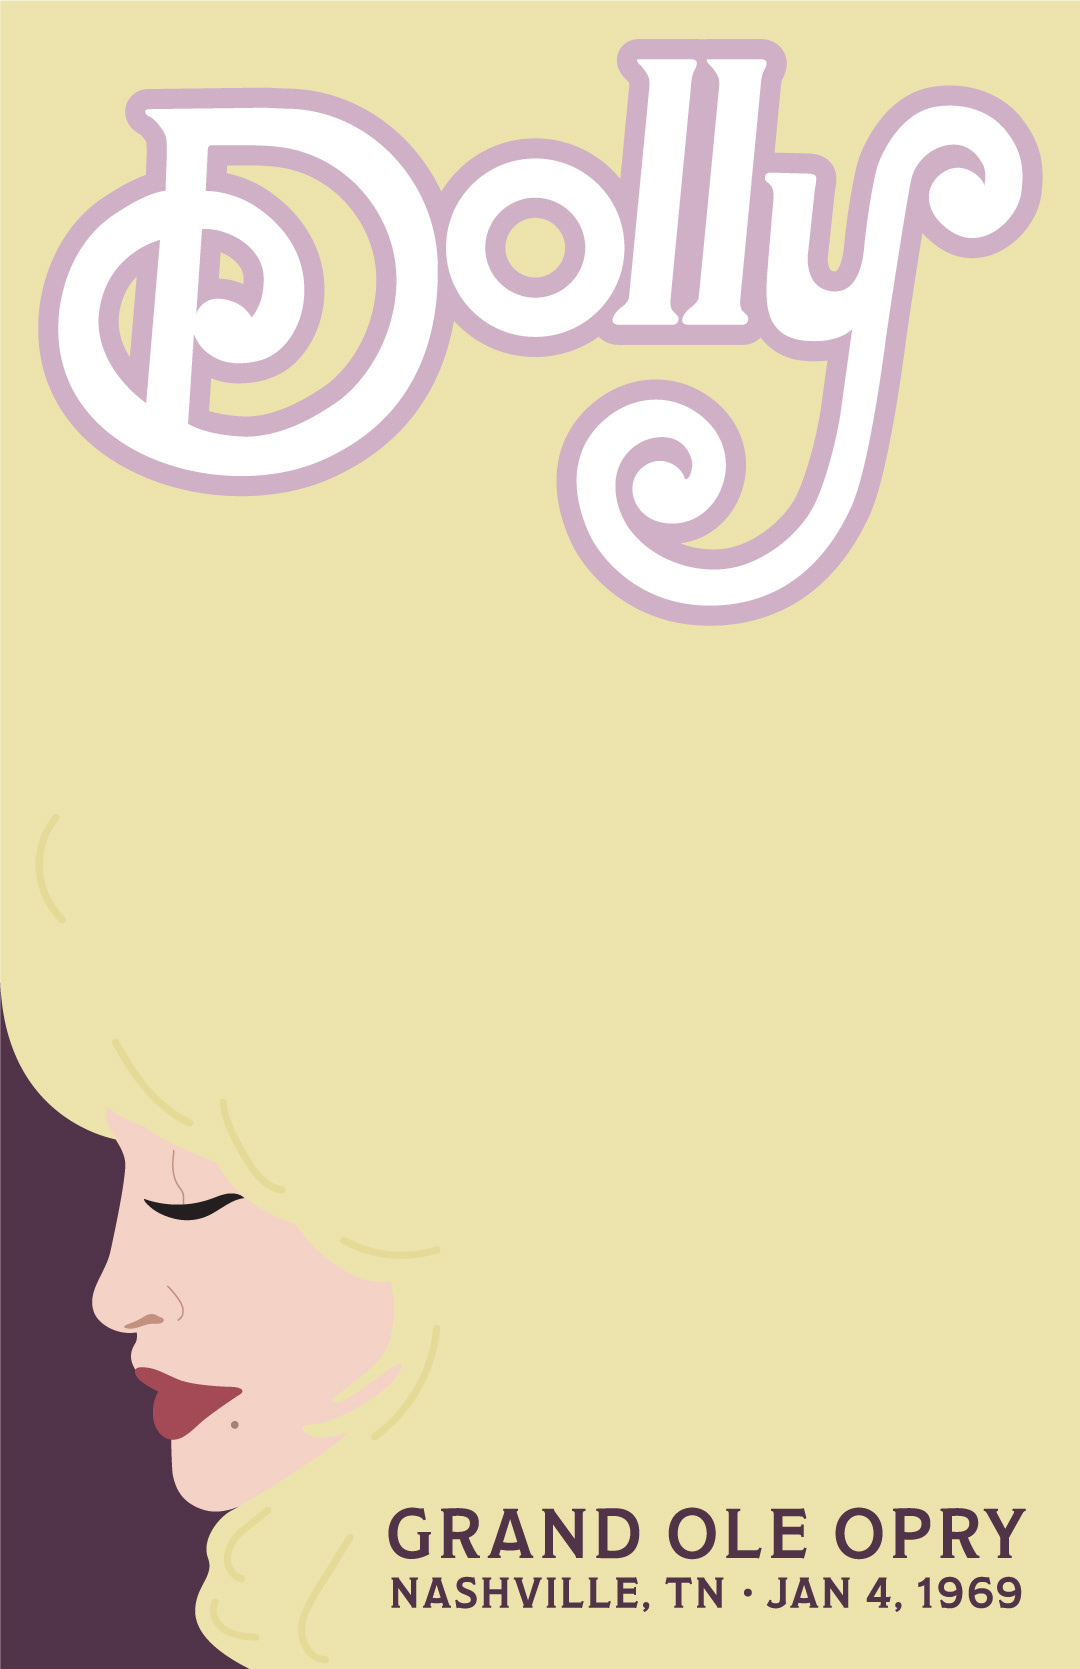 dolly parton concert poster on behance